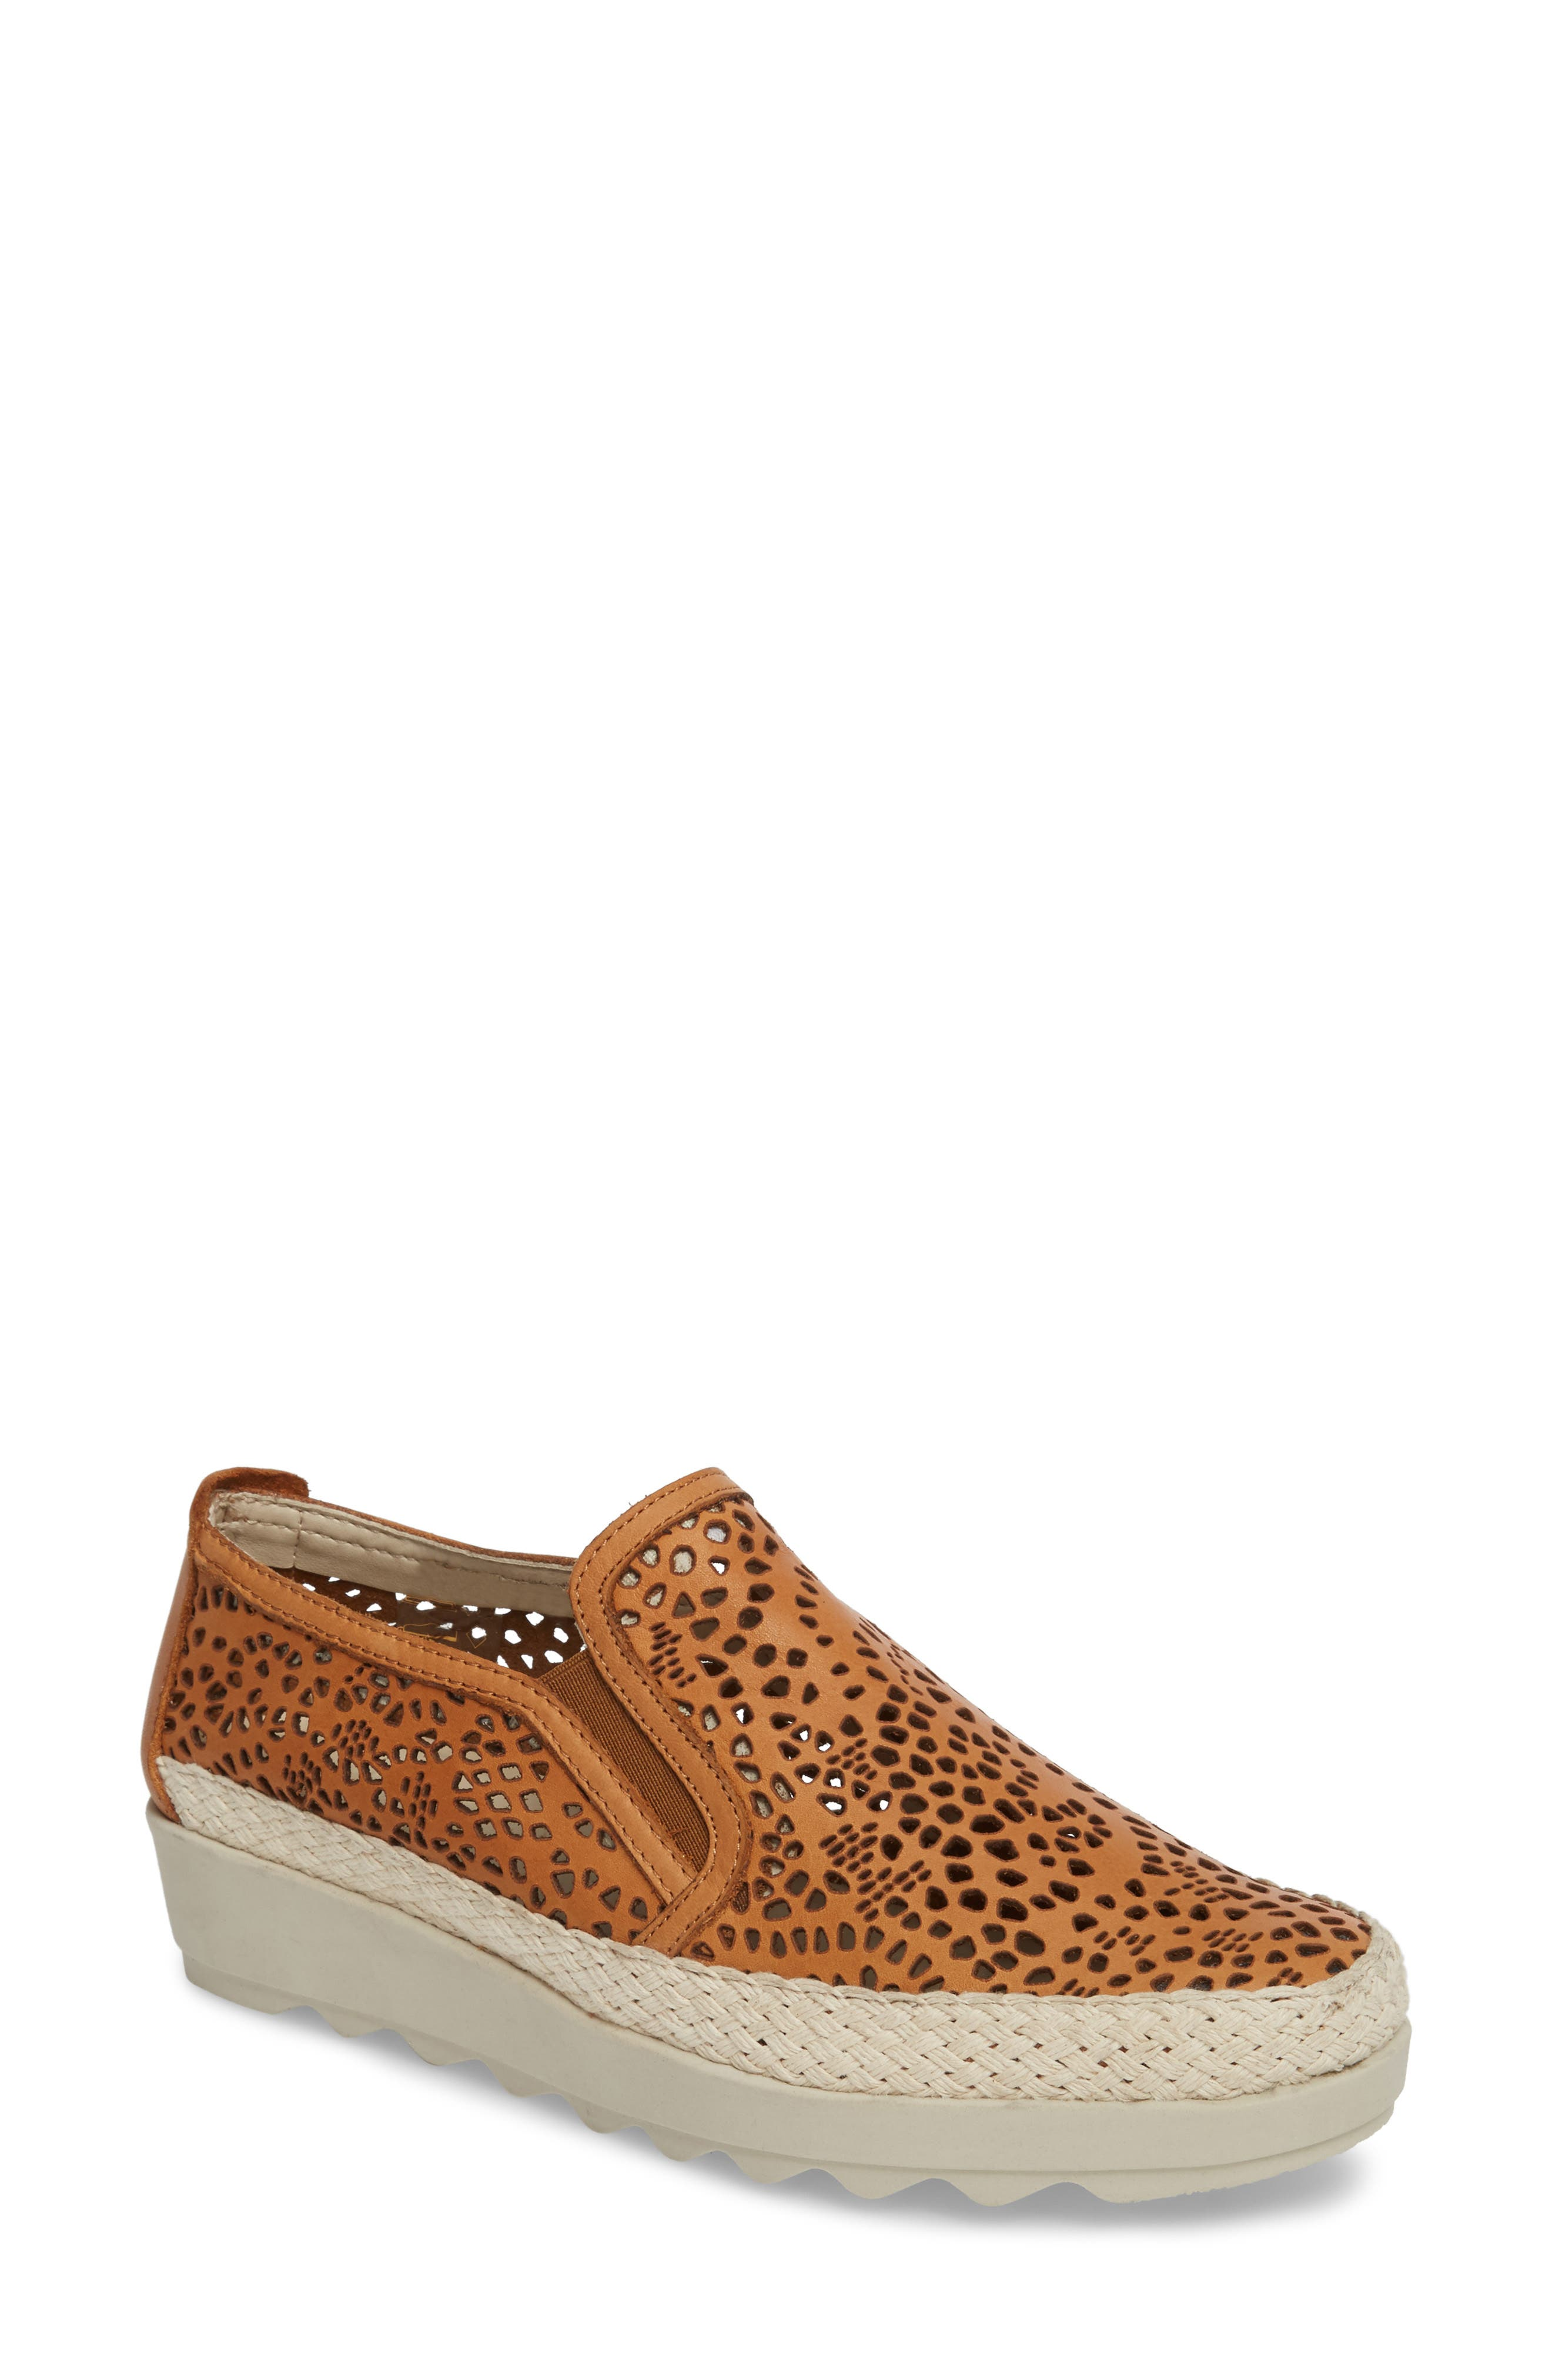 Alternate Image 1 Selected - The FLEXX Call Me Perforated Slip-On Sneaker (Women)